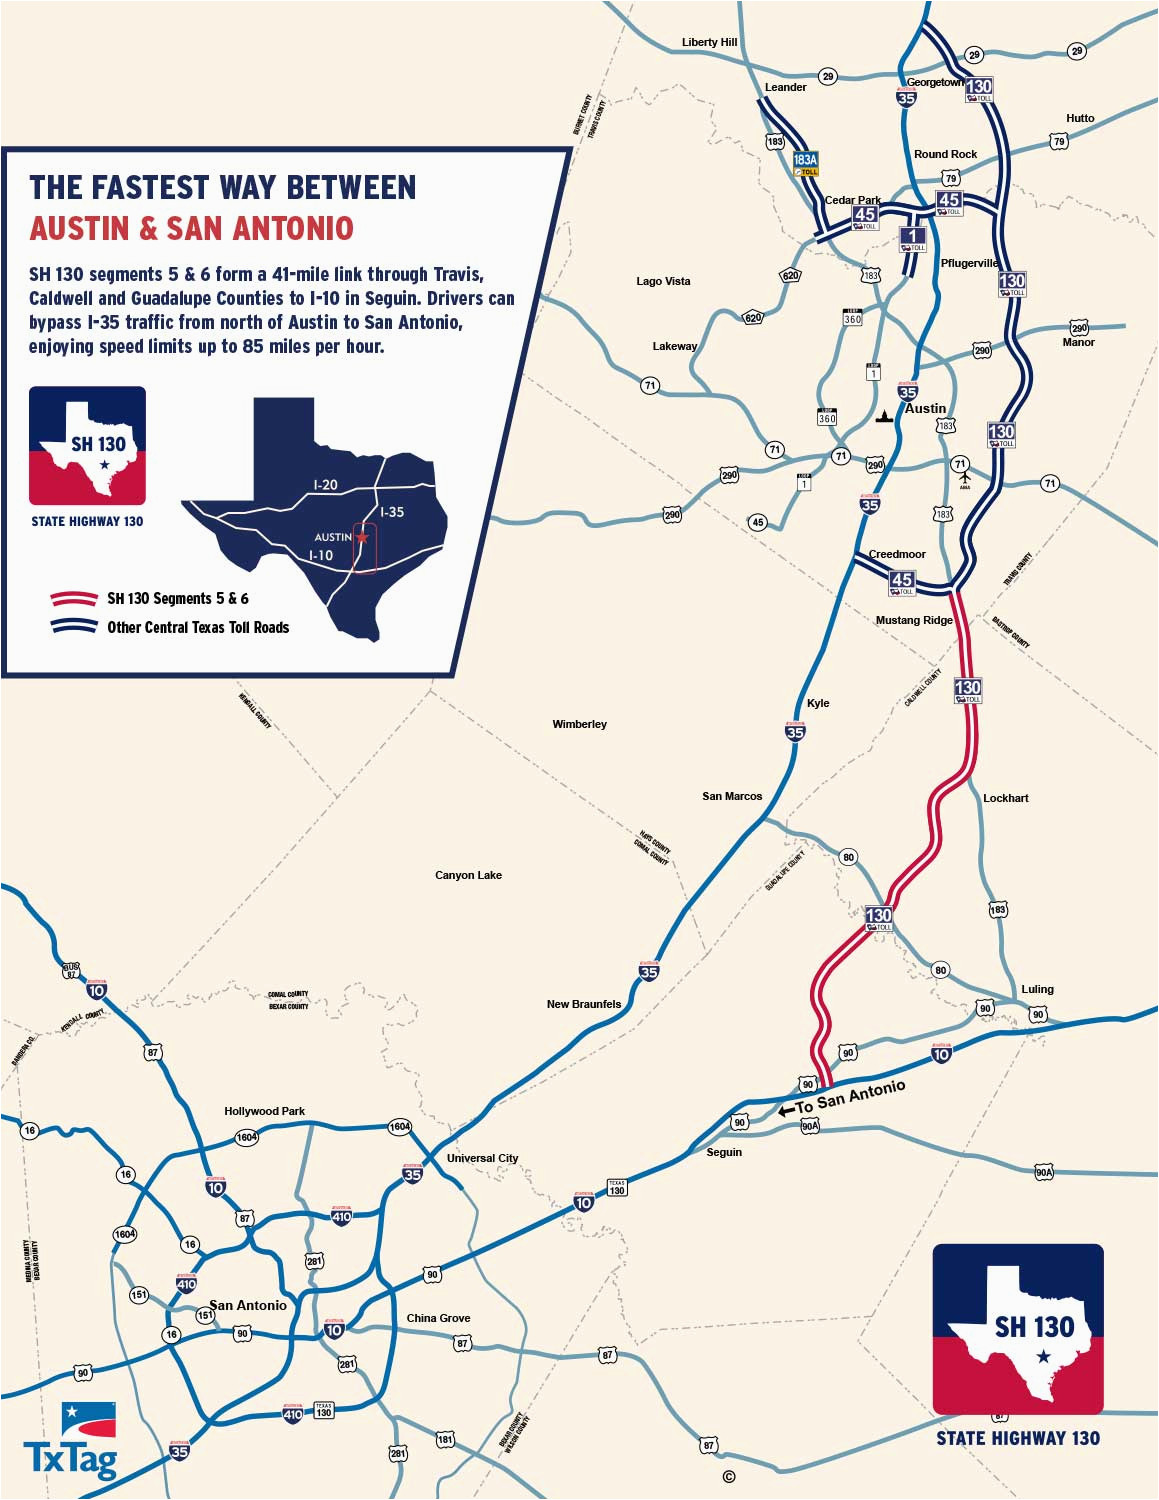 Map Of Interstate 69 In Texas.Interstate 69 Texas Map State Highway 130 Maps Sh 130 The Fastest